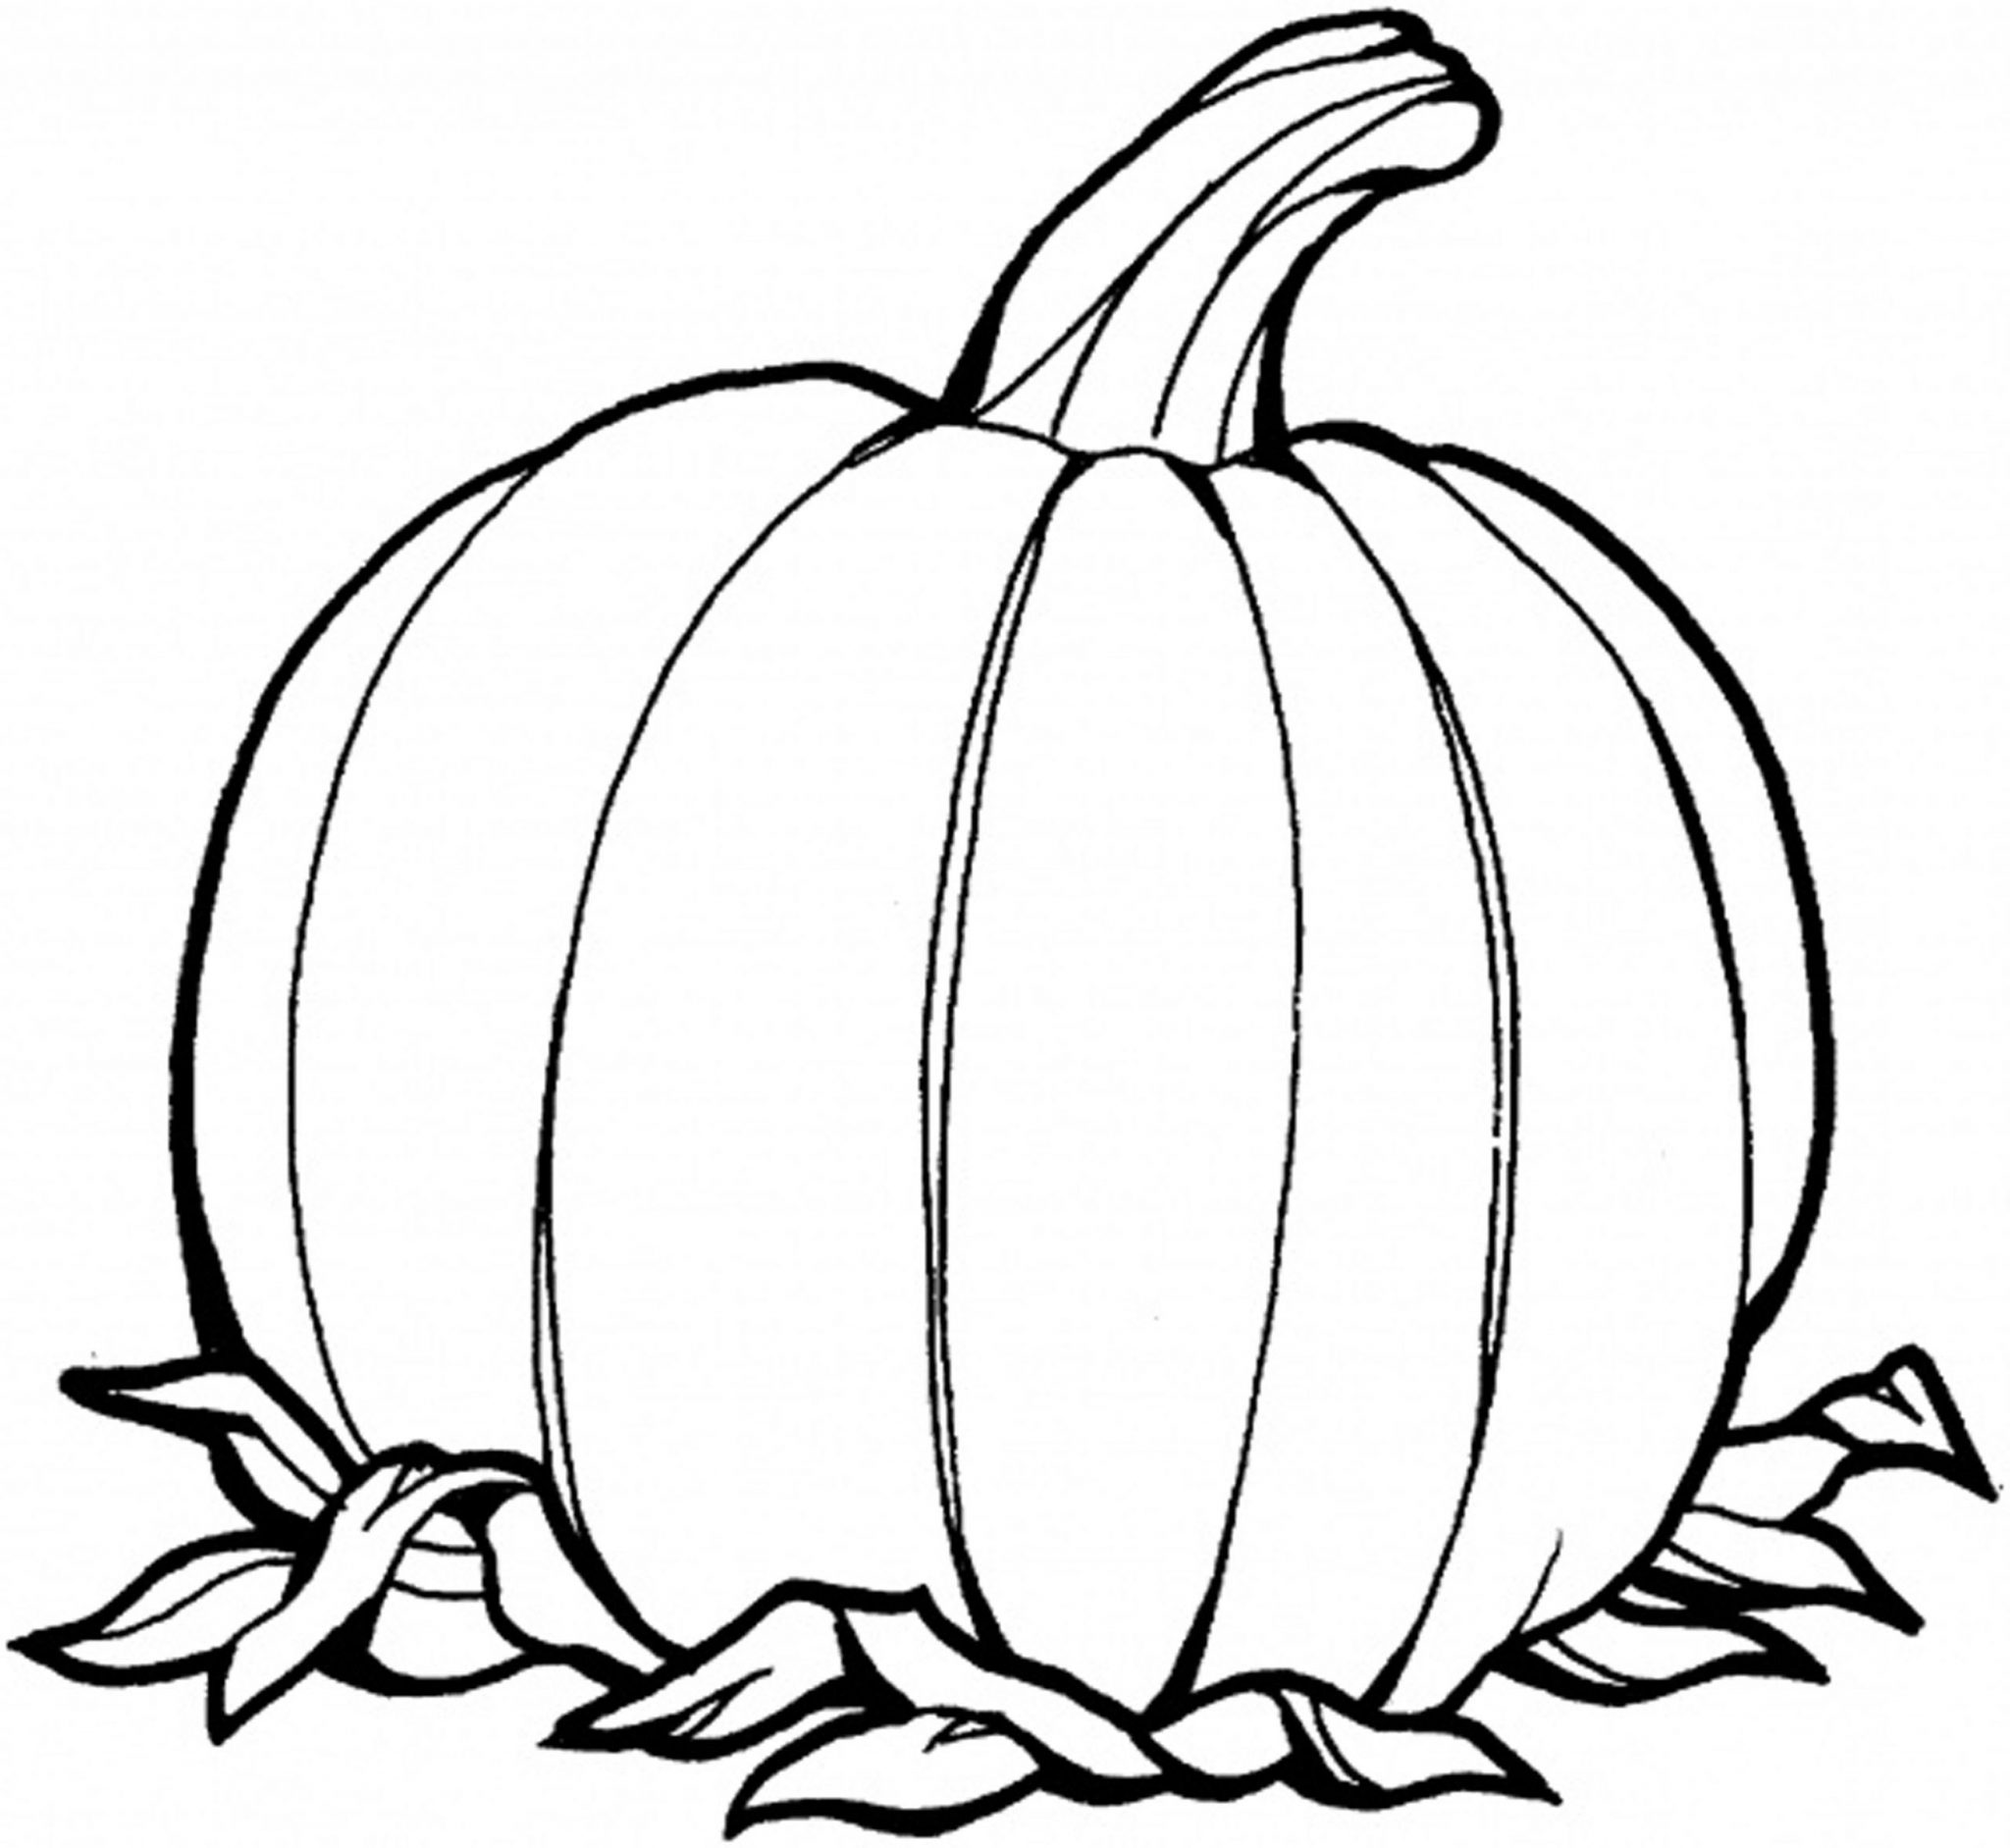 color a pumpkin free printable pumpkin coloring pages for kids a pumpkin color